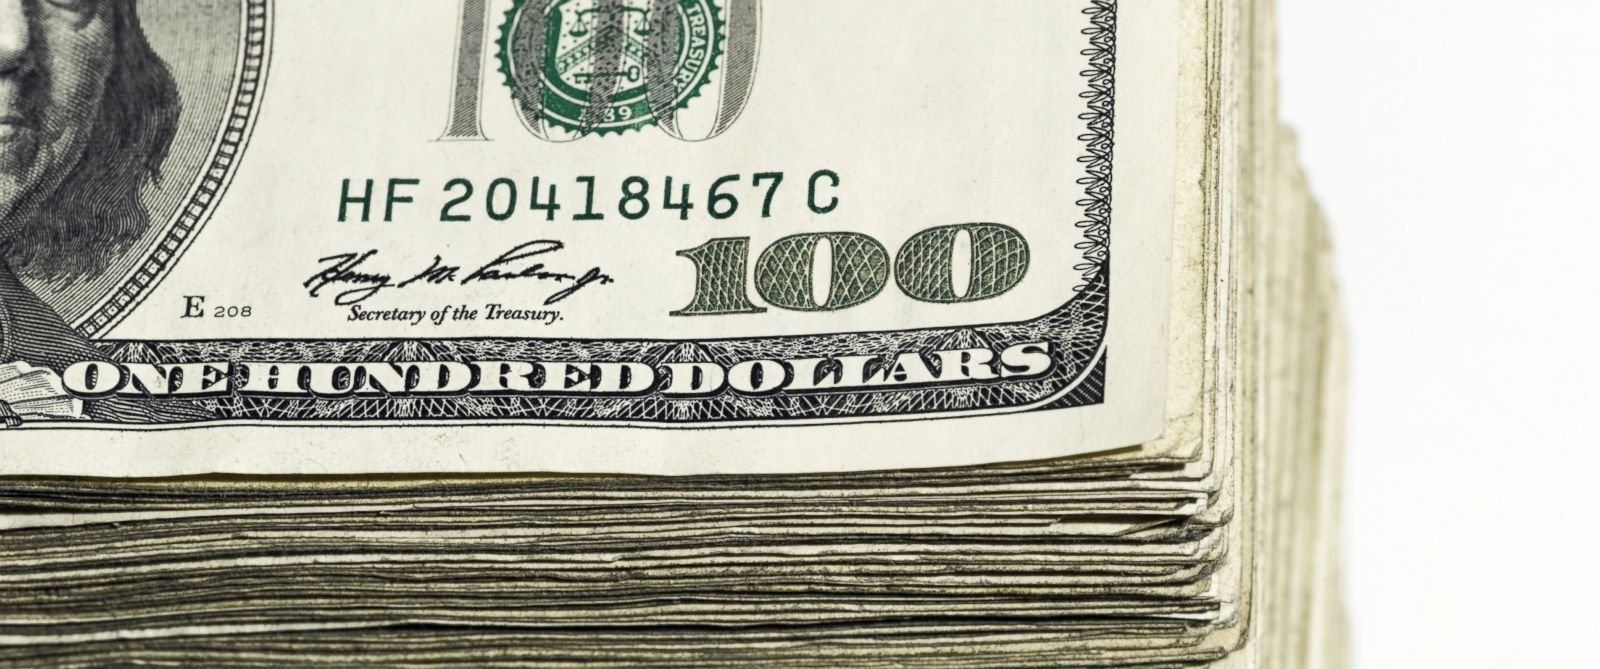 PHOTO: A stack of hundred dollar bills are seen in this stock photo.